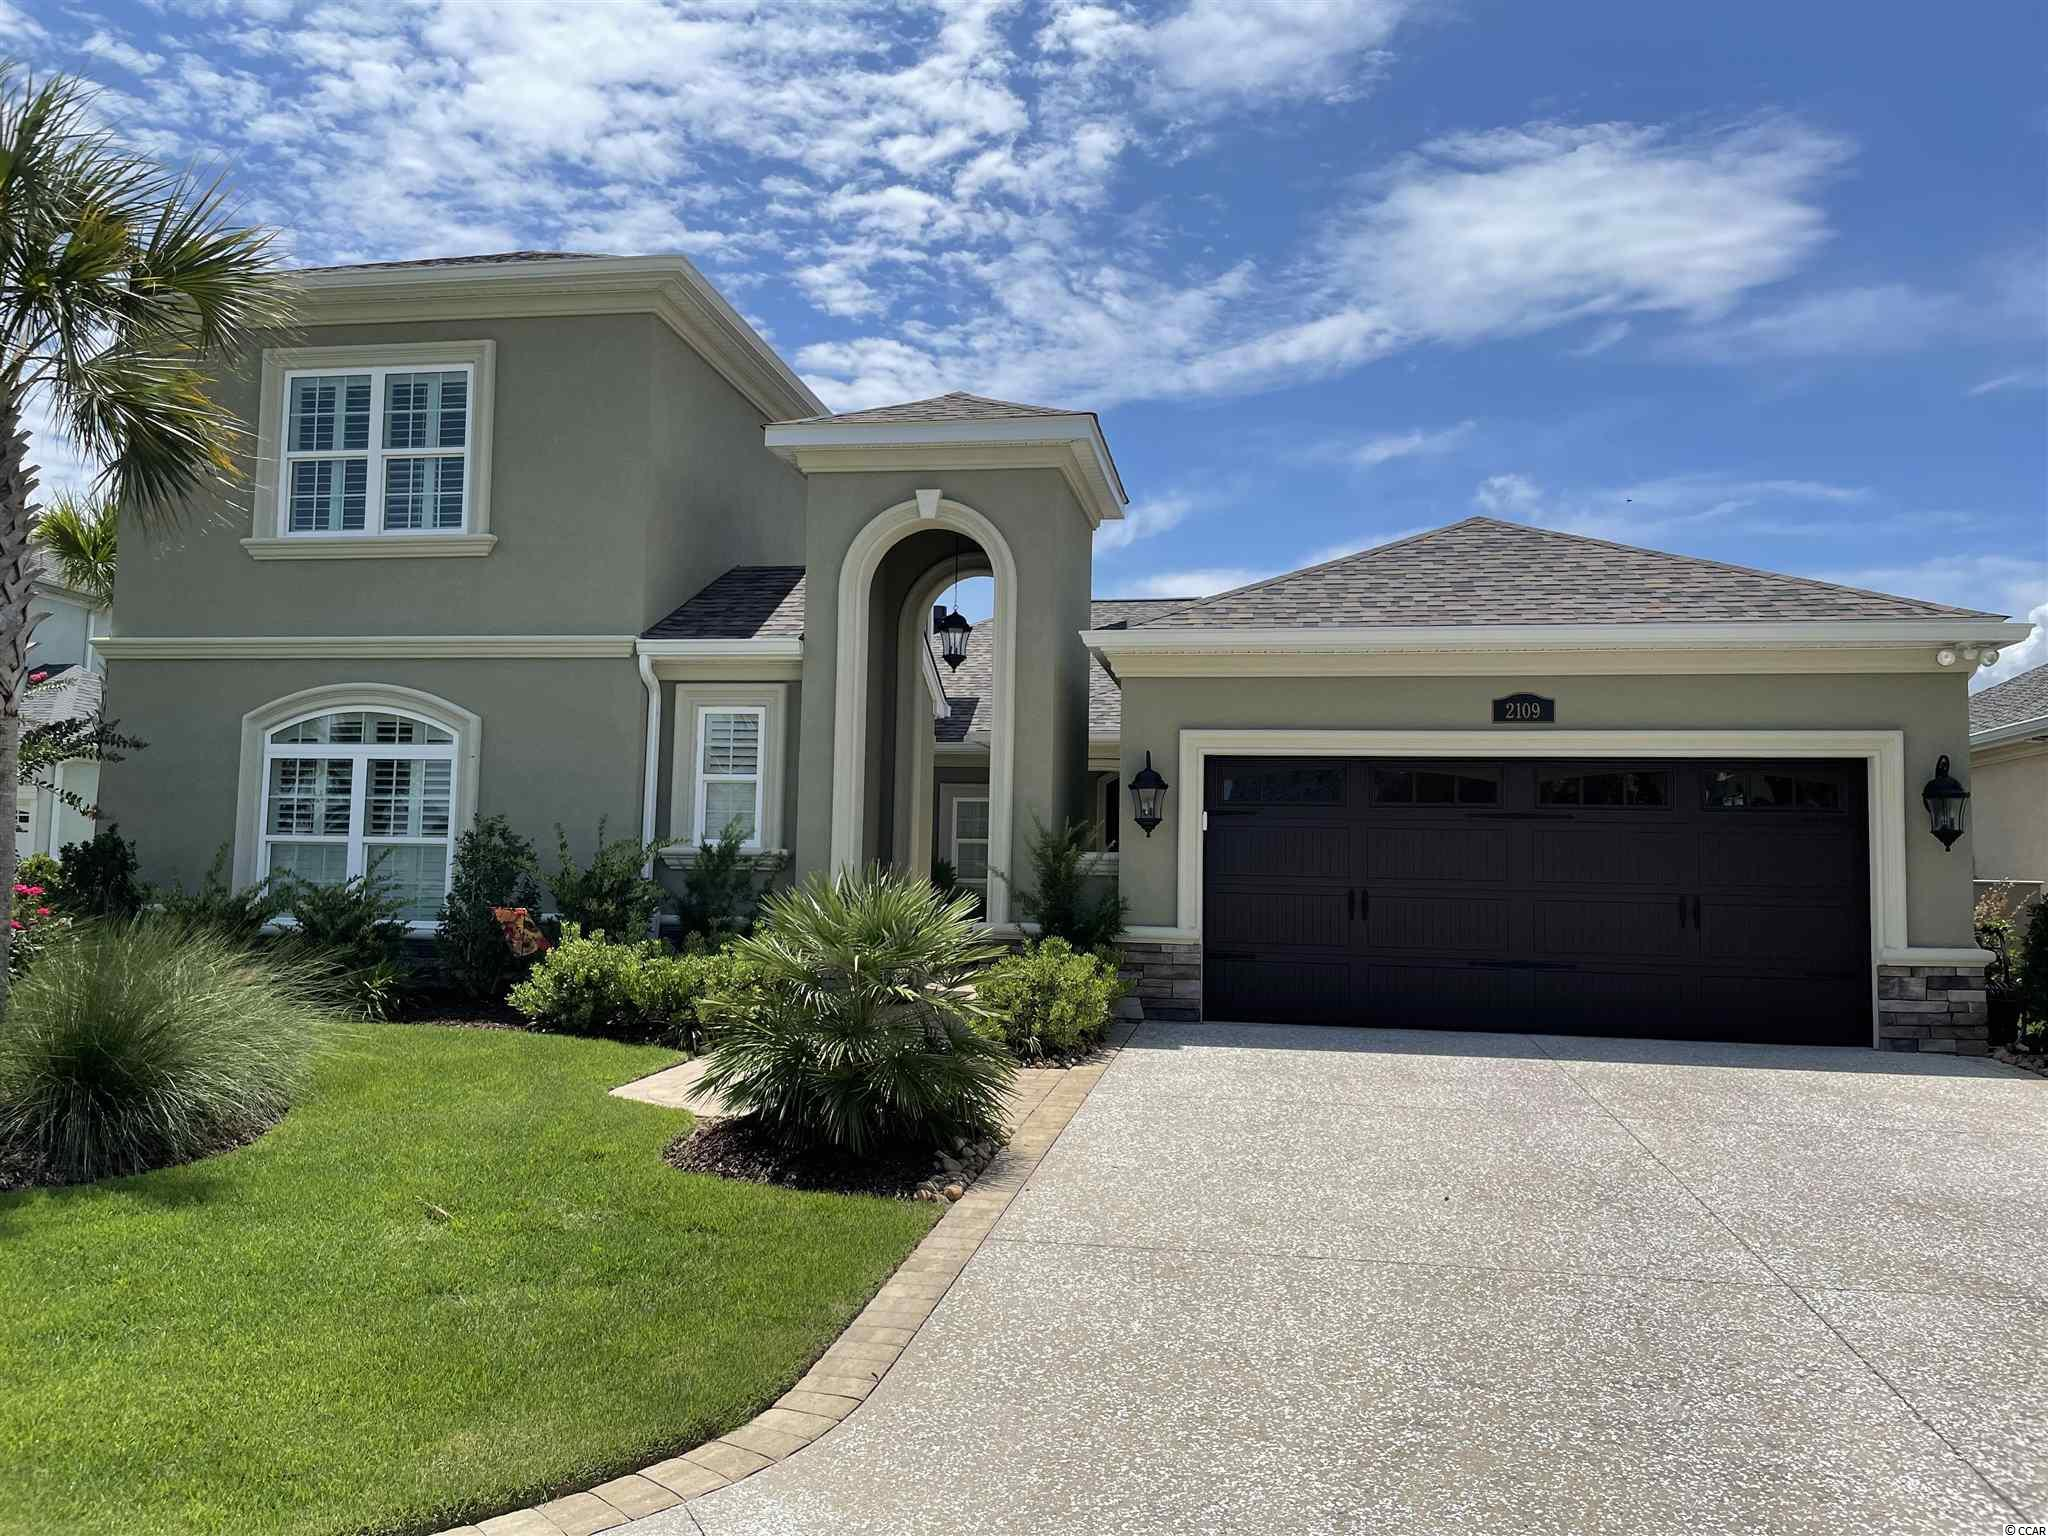 This beautiful, two-story Mediterranean style home is located in the popular Tuscan Sands subdivision at Barefoot Resort and Golf. Exterior details include a tower entry into a pavered courtyard with lush flower beds, rear covered and screened patio, and rear covered concrete patio-deck with pond views. This home has over 2,900 square feet of air conditioned living area and is just over 4,000 total square feet, thus providing a generous amount of open floor living space. From the kitchen's custom cabinetry and stainless steel appliances to the master suite and bath's double sinks, spacious garden tub, and luxurious walk-in shower, this house exudes quality craftsmanship. If you are looking for a house built with extra care and excruciating attention to detail, this is it. This home was custom built for the owners. They have been the sole occupiers of the house for the past two (2) years. They have installed the following upgrades: custom closet treatment in the master closet, custom cabinetry and desk in the office, custom shelving and sink in the garage, and a full home security system. Tuscan Sands has a prime location within the Resort. It is within walking distance of the Resort Clubhouse, driving range, and restaurants. You are also a little over a mile to the ocean and right across the Intracoastal from Barefoot Landing and all that the beach has to offer. You could not ask for a better place to call home. Don't miss out on this amazing opportunity to live in the lap of luxury at Barefoot Resort and Golf!